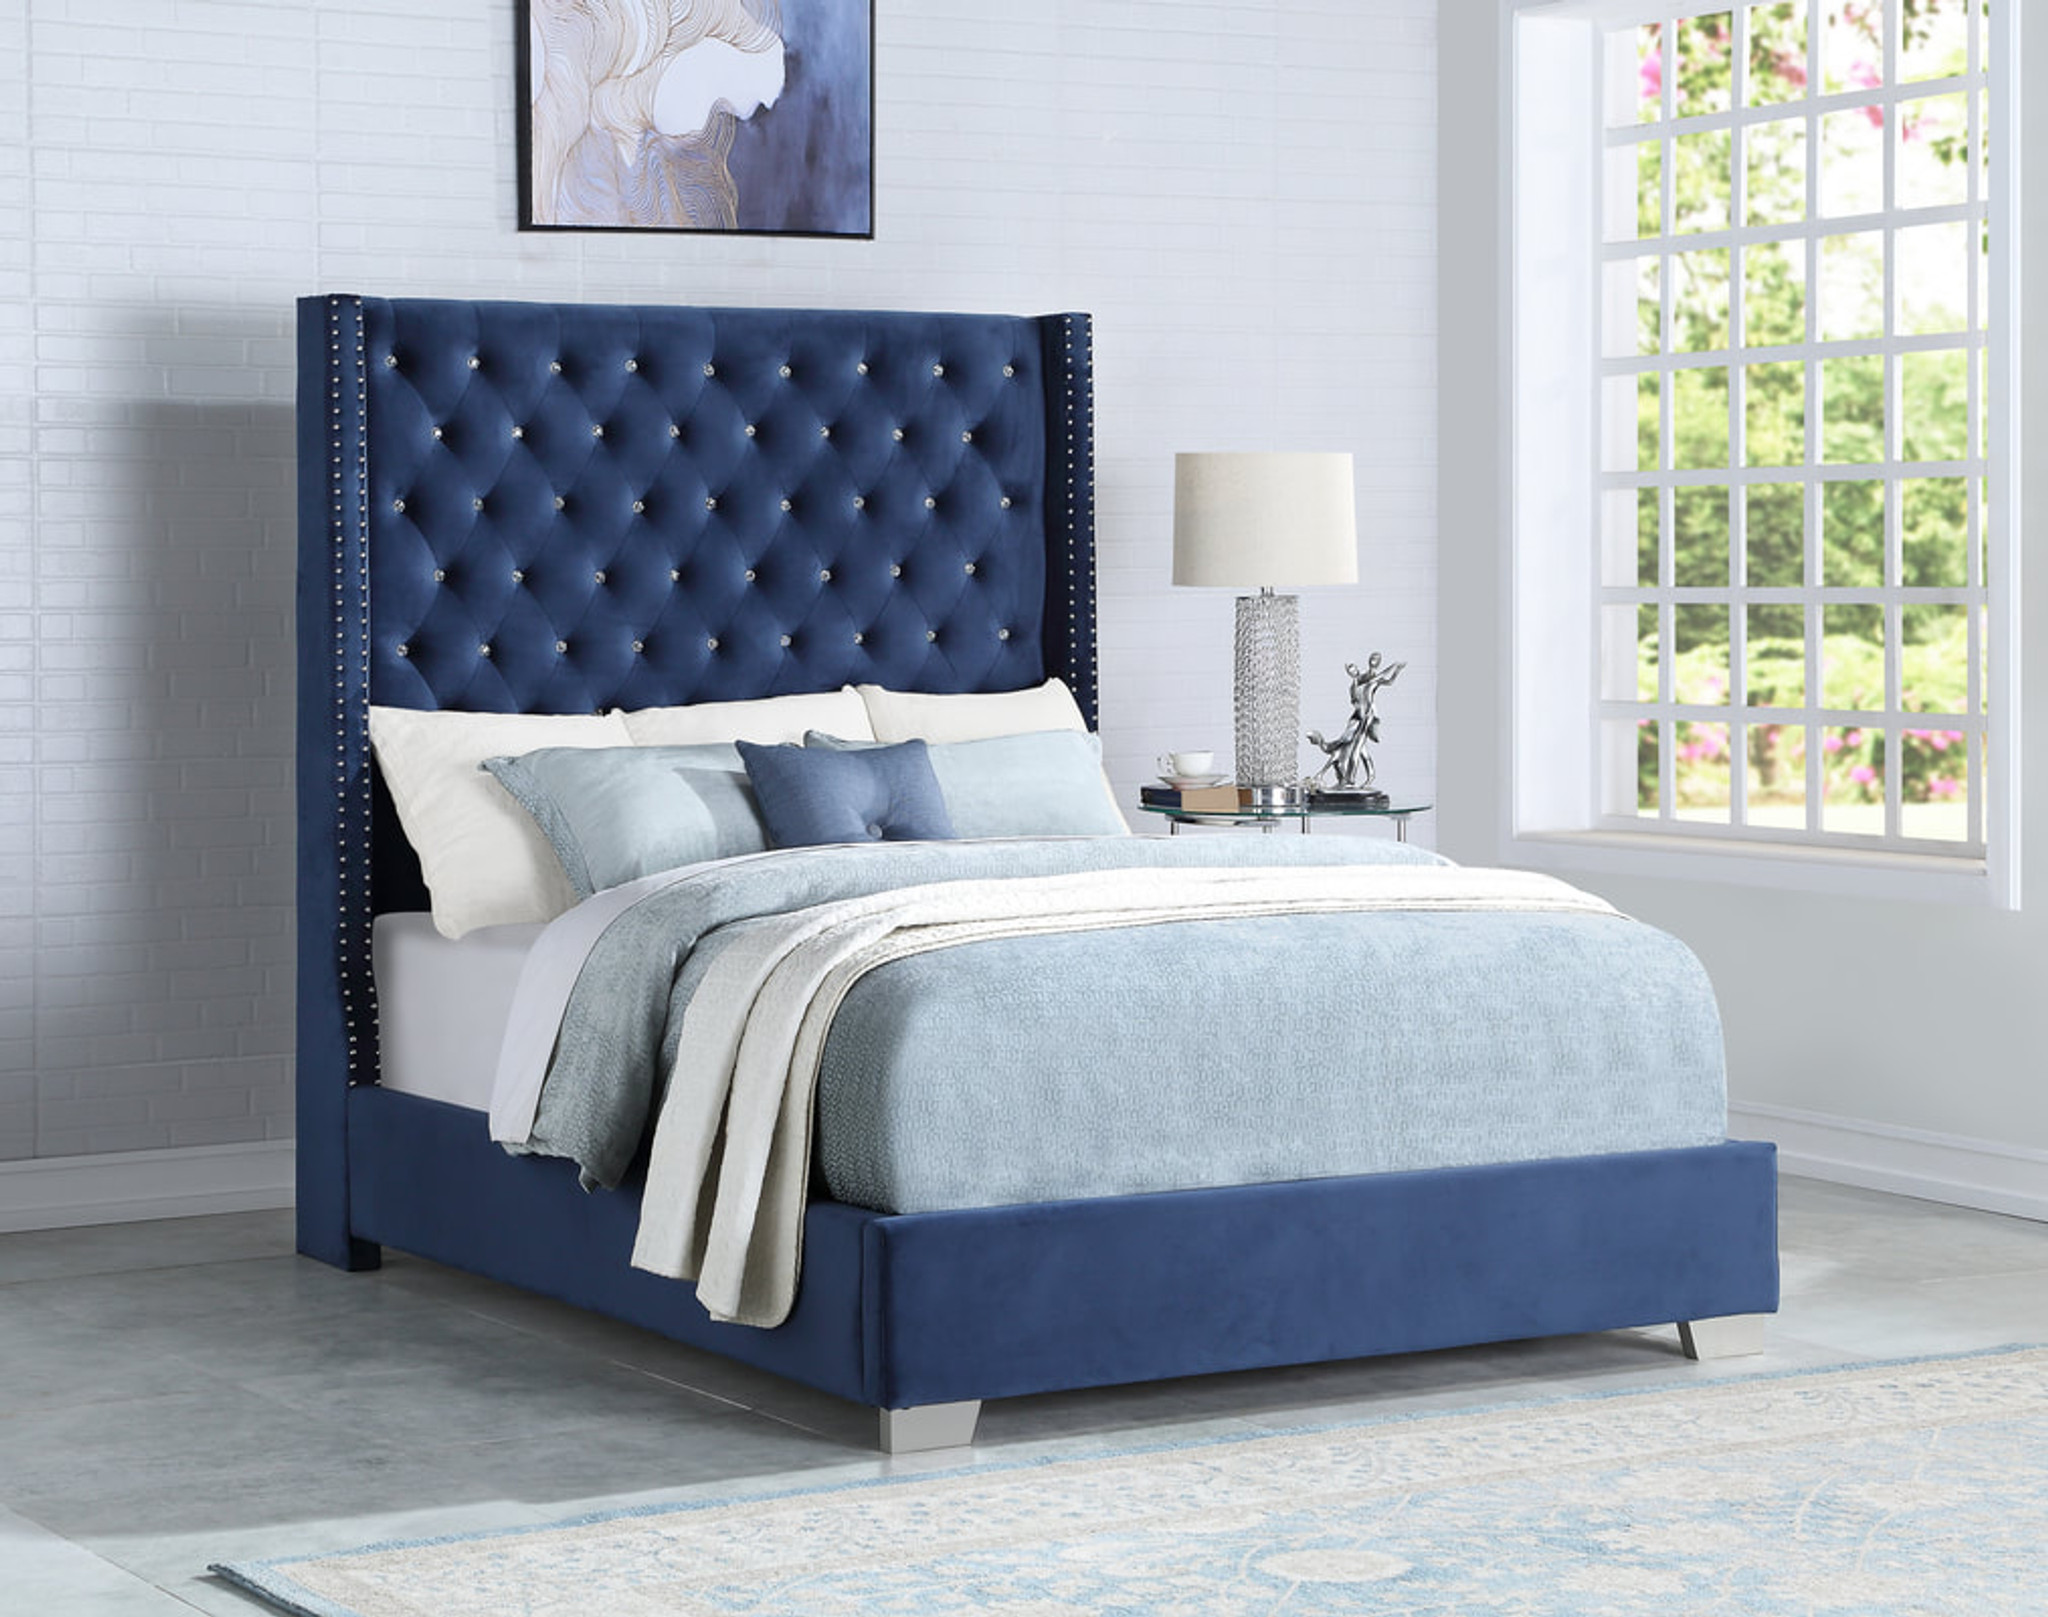 Arya 6 Ft Blue Velvet Upholstery Bed With Diamond Km Home Furniture